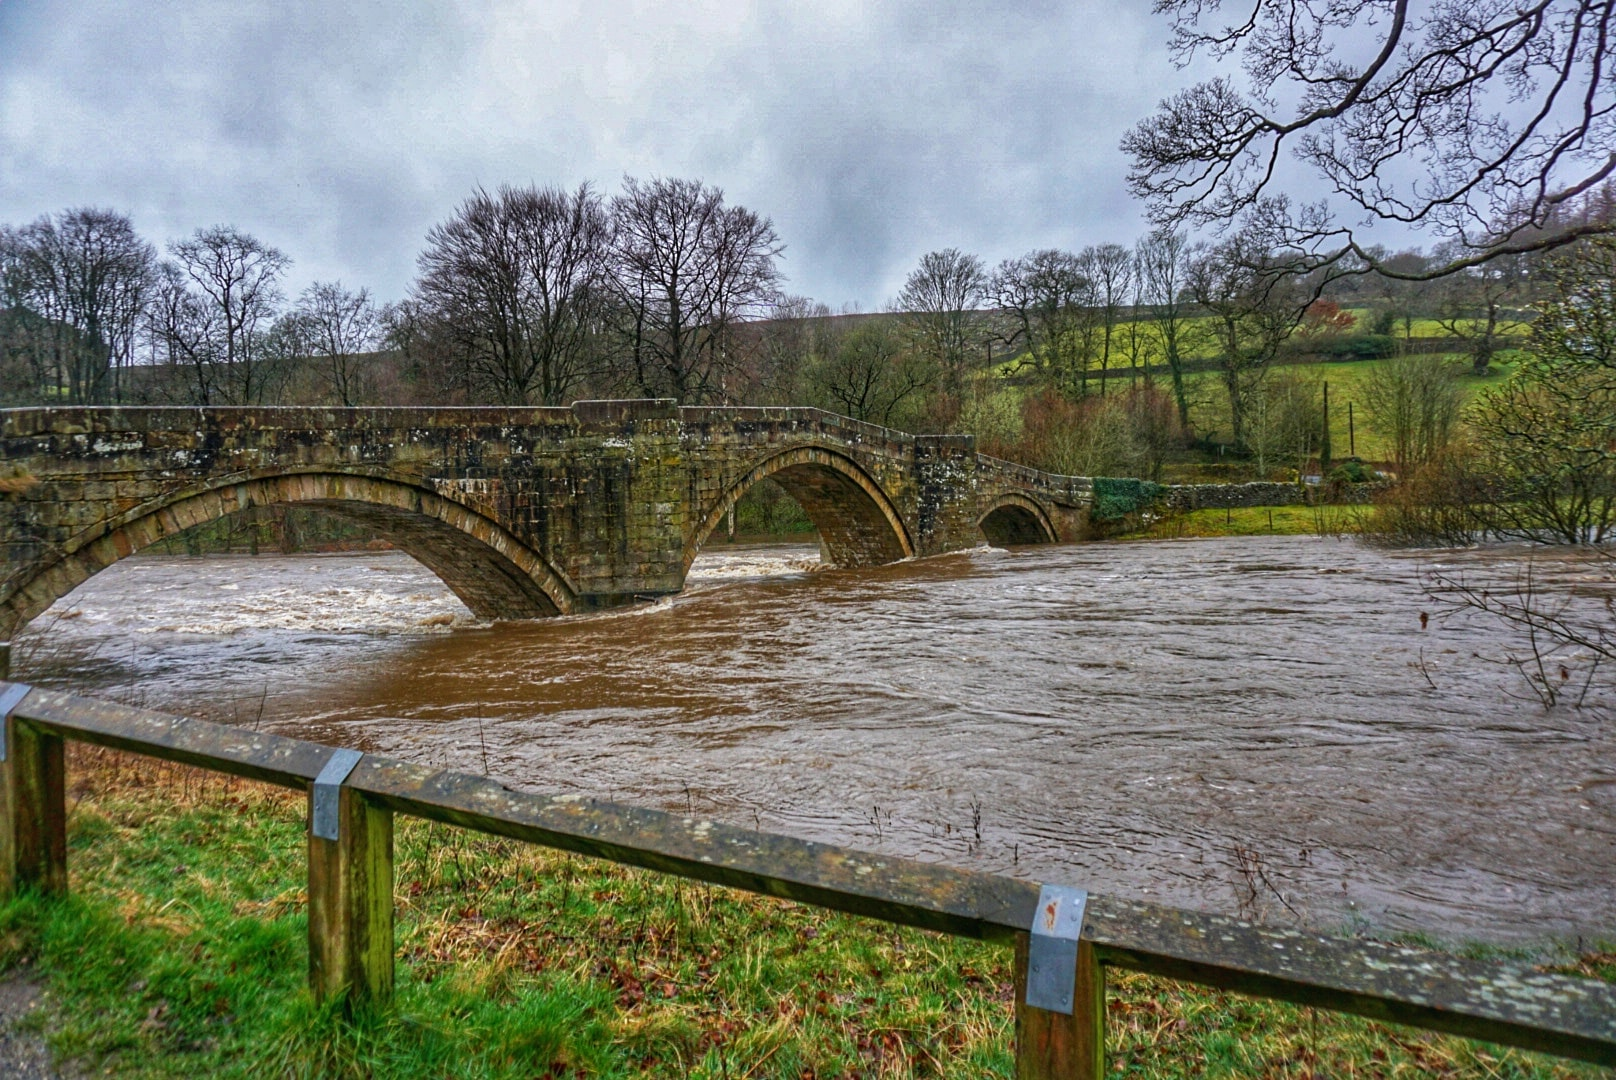 What a difference a few months makes! Bridge battered by flood waters